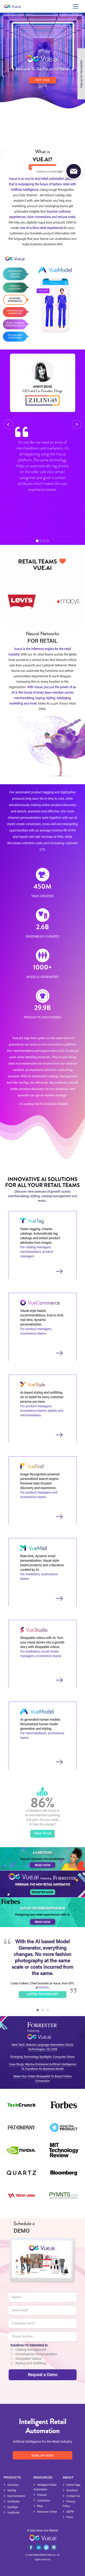 Example of Design for Business & Industrial, Mobile Landing Page by vue.ai | Mobile Landing Page Design